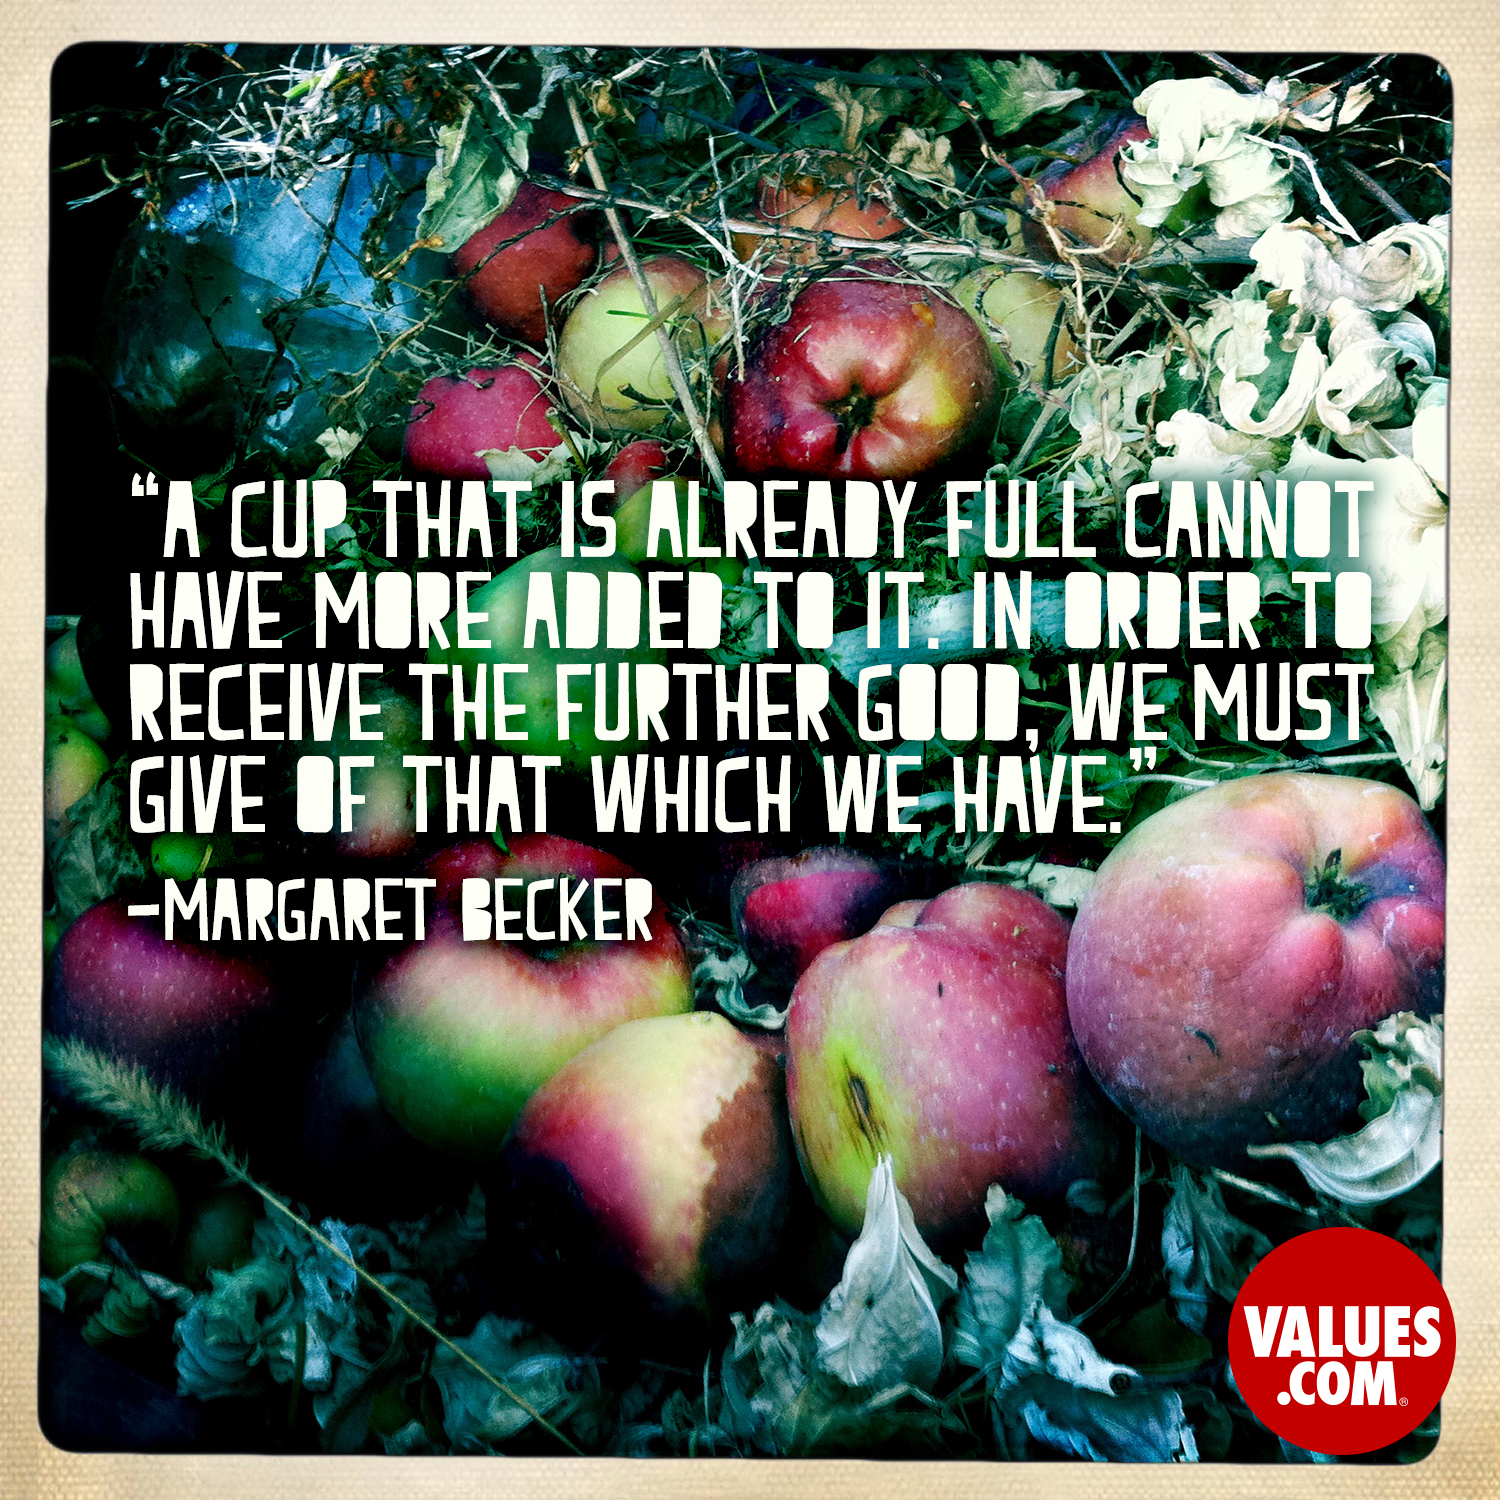 A cup that is already full cannot have more added to it. In order to receive the further good, we must give of that which we have. —Margaret Becker